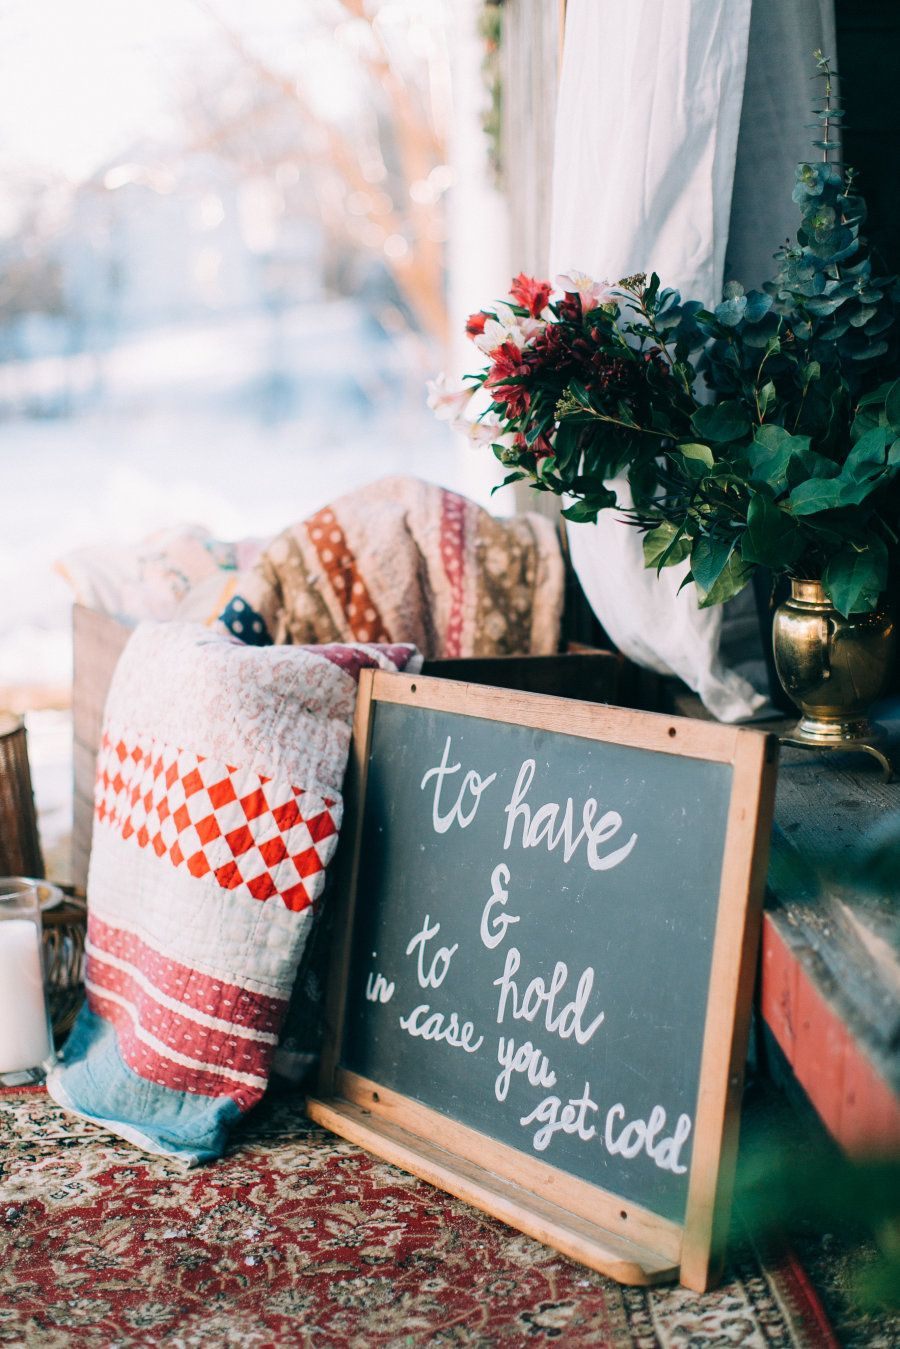 A cute winter sign: http://www.stylemepretty.com/2016/03/29/the-prettiest-wedding-details-for-every-season/